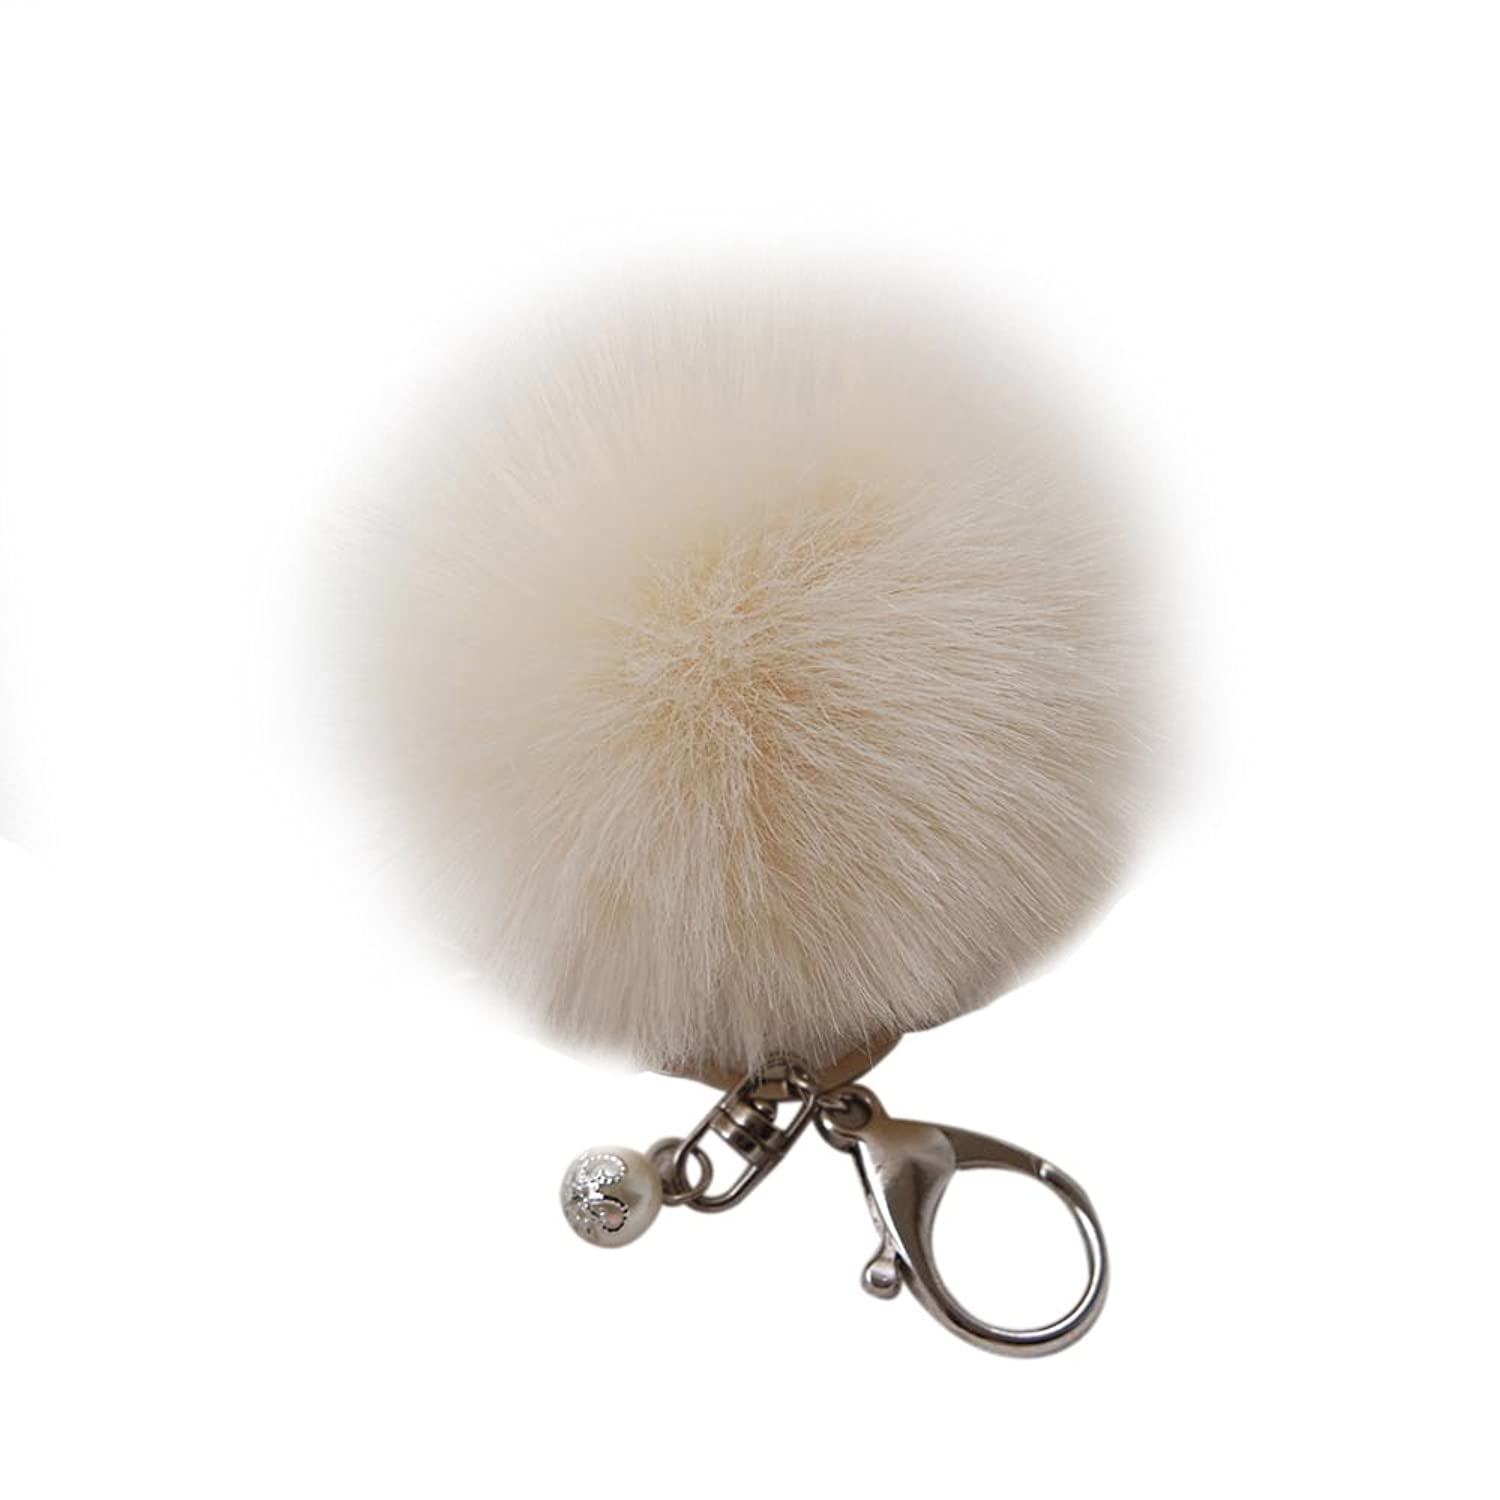 New Faux Rabbit Fur Ball Keychain Bag Plush Car Key Ring Car Key Pendant Chaveiro 17 Color Fur Keychain #48^White